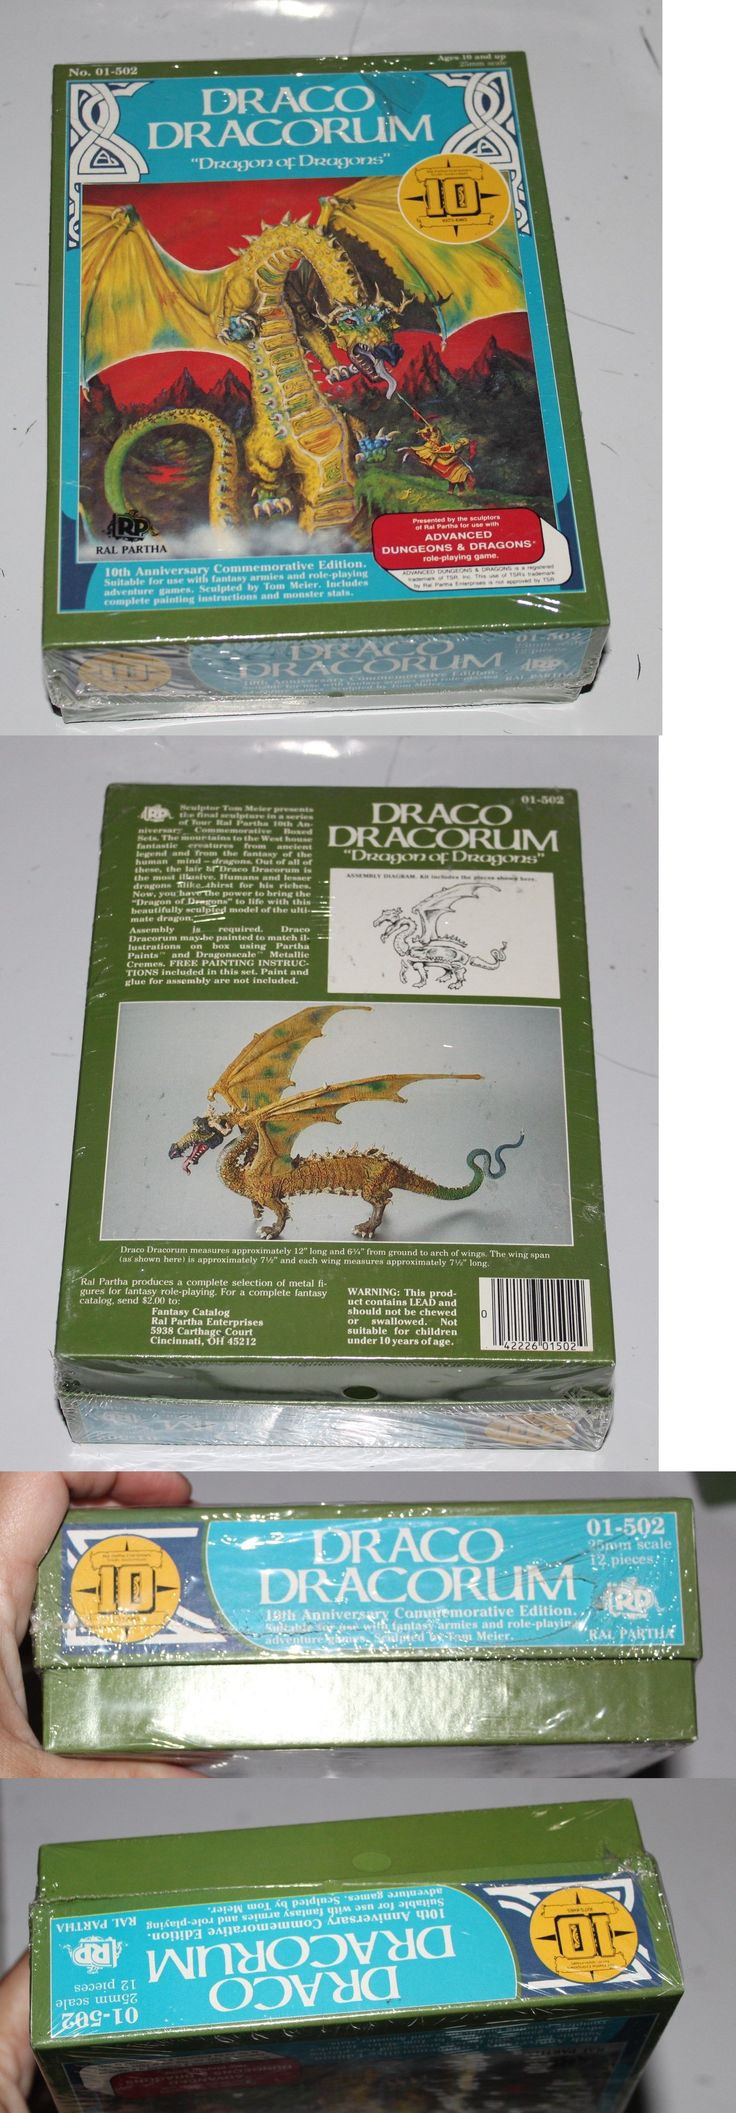 Ral Partha 16489: Draco Dracorum Ral Partha Adandd 01-502 10Th Anniversary Dragon Of Dragons Sealed -> BUY IT NOW ONLY: $499.95 on eBay!